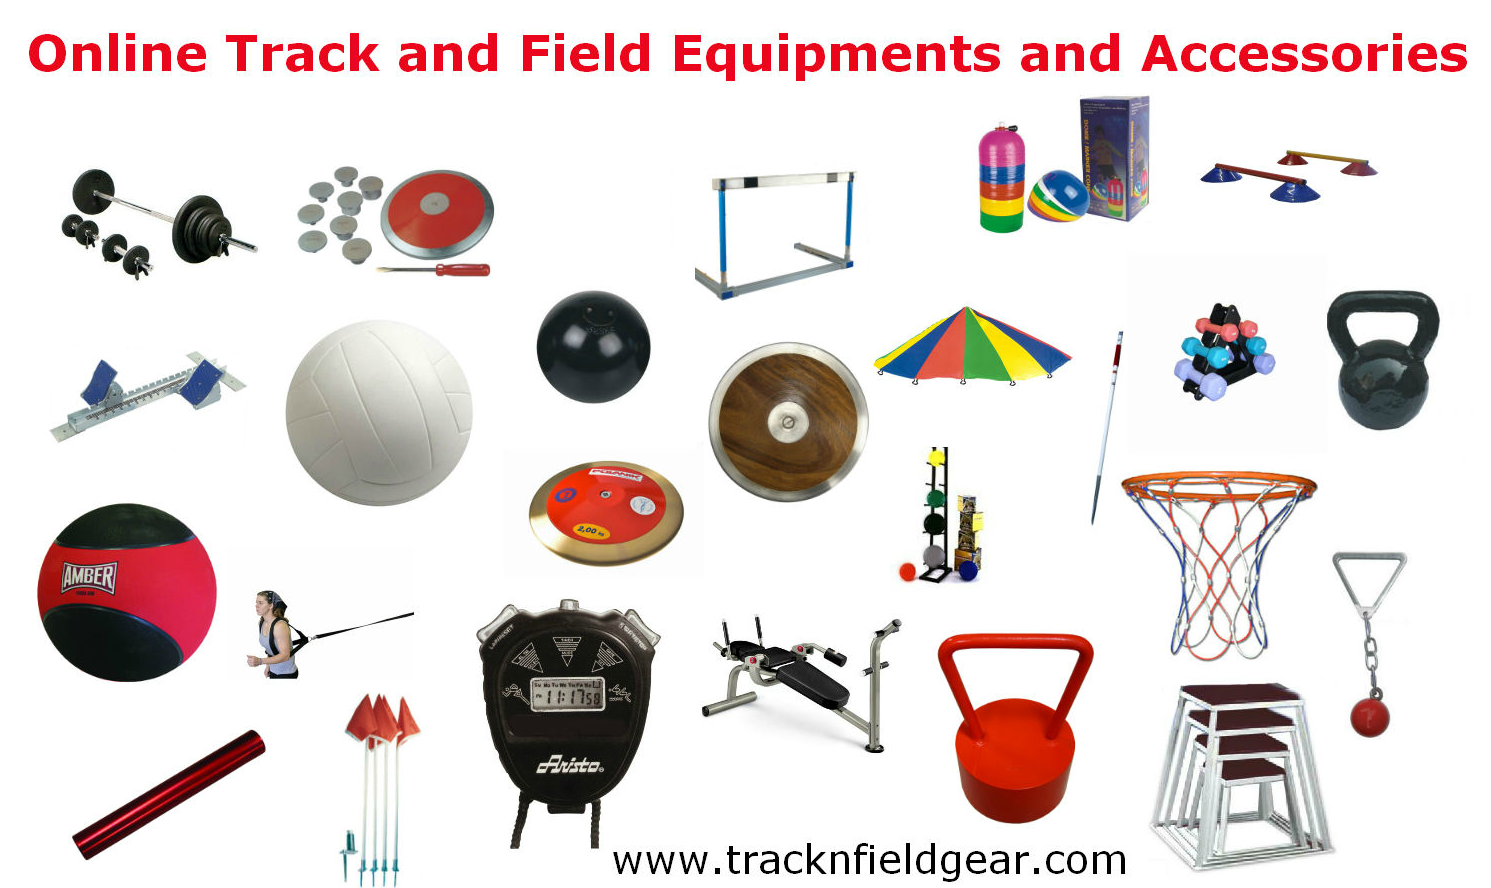 Online-Track-and-Field-Equipments-and-Accessories